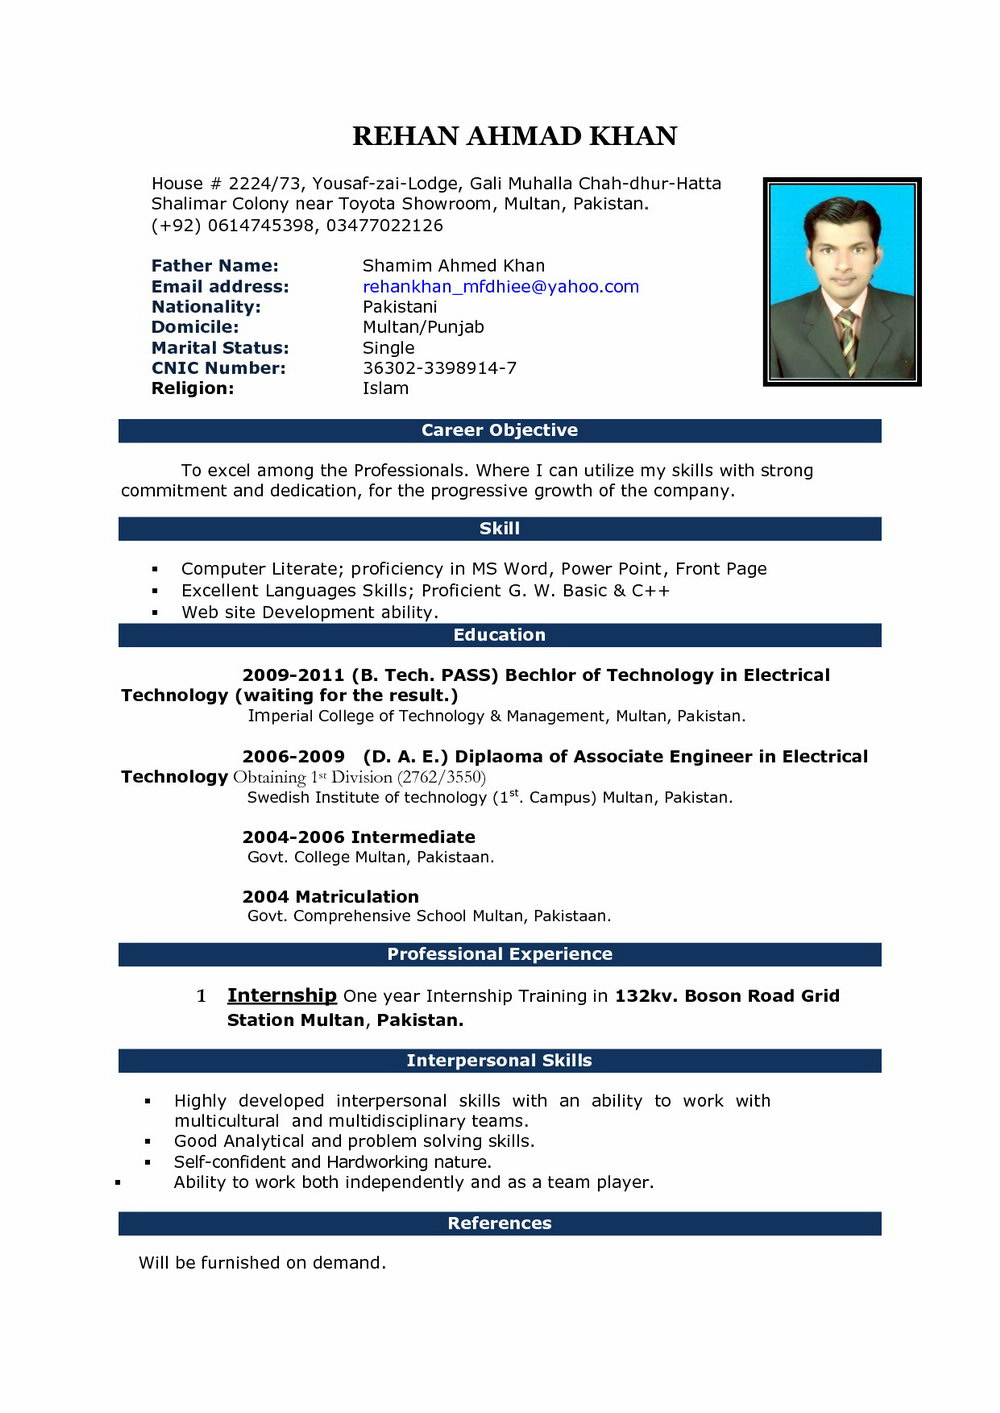 Free Resume Templates Download For Windows 7